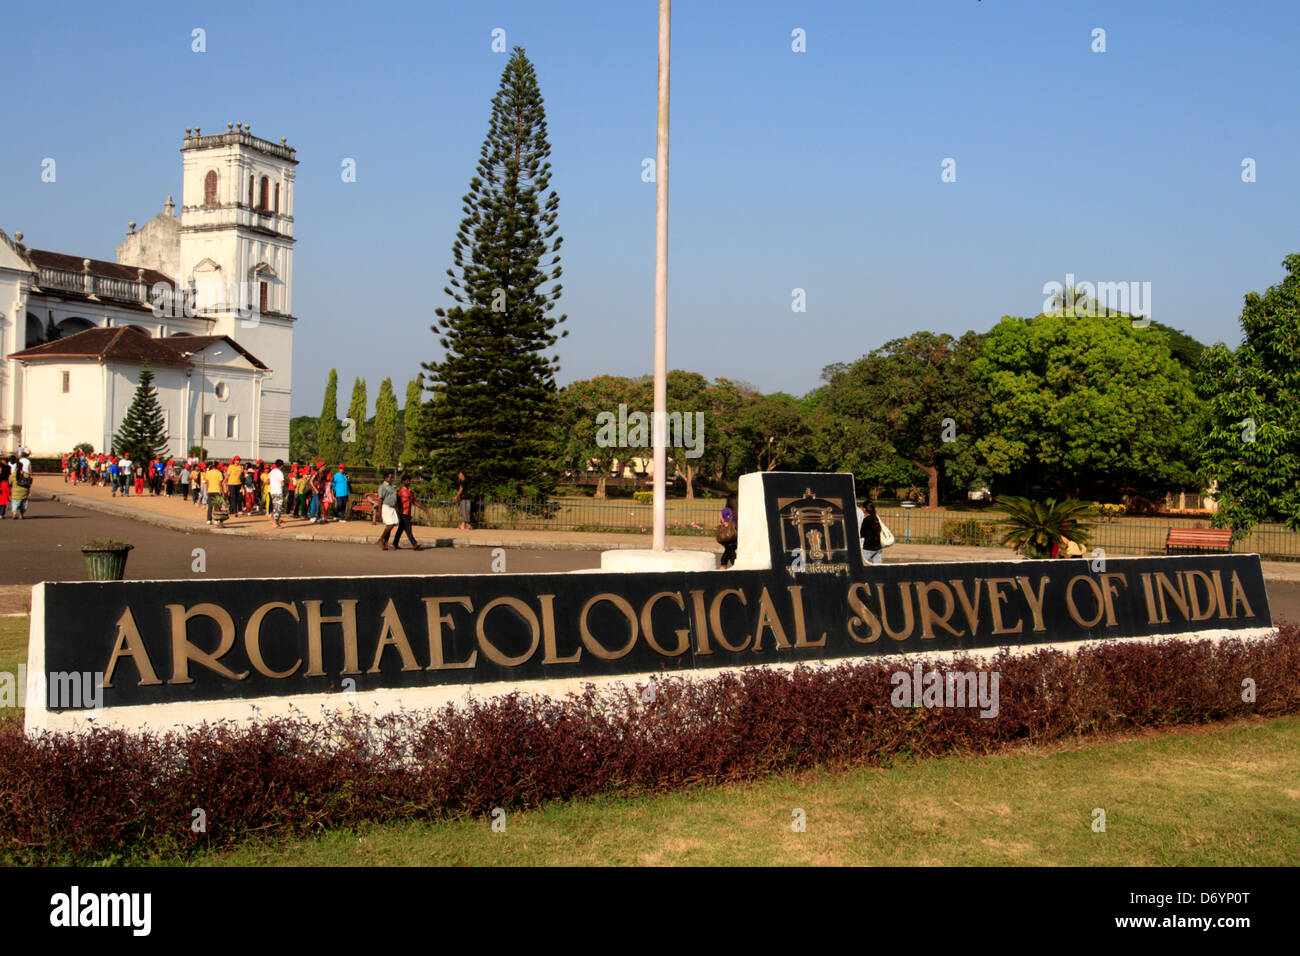 Archaeological Survey of India sign in front of the Se Cathedral, Old Goa, India Stock Photo